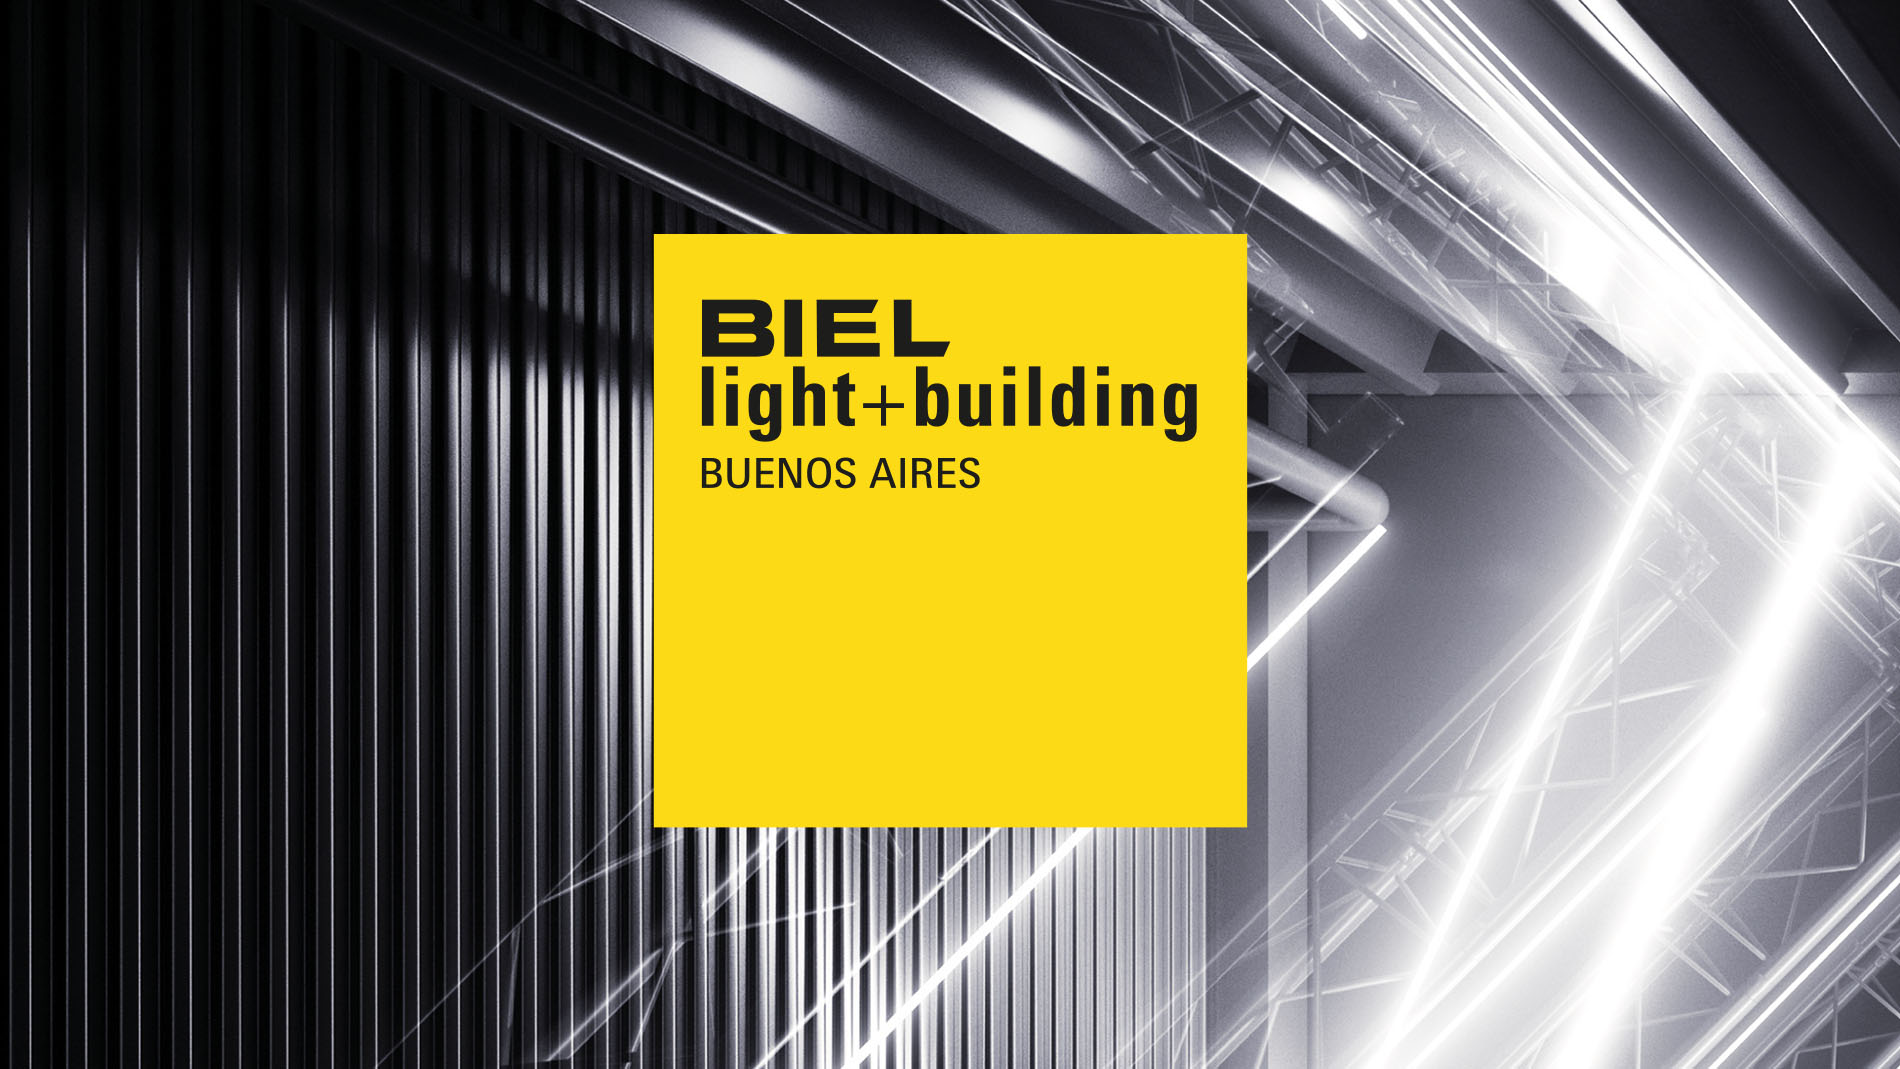 BIEL Light + Building BA